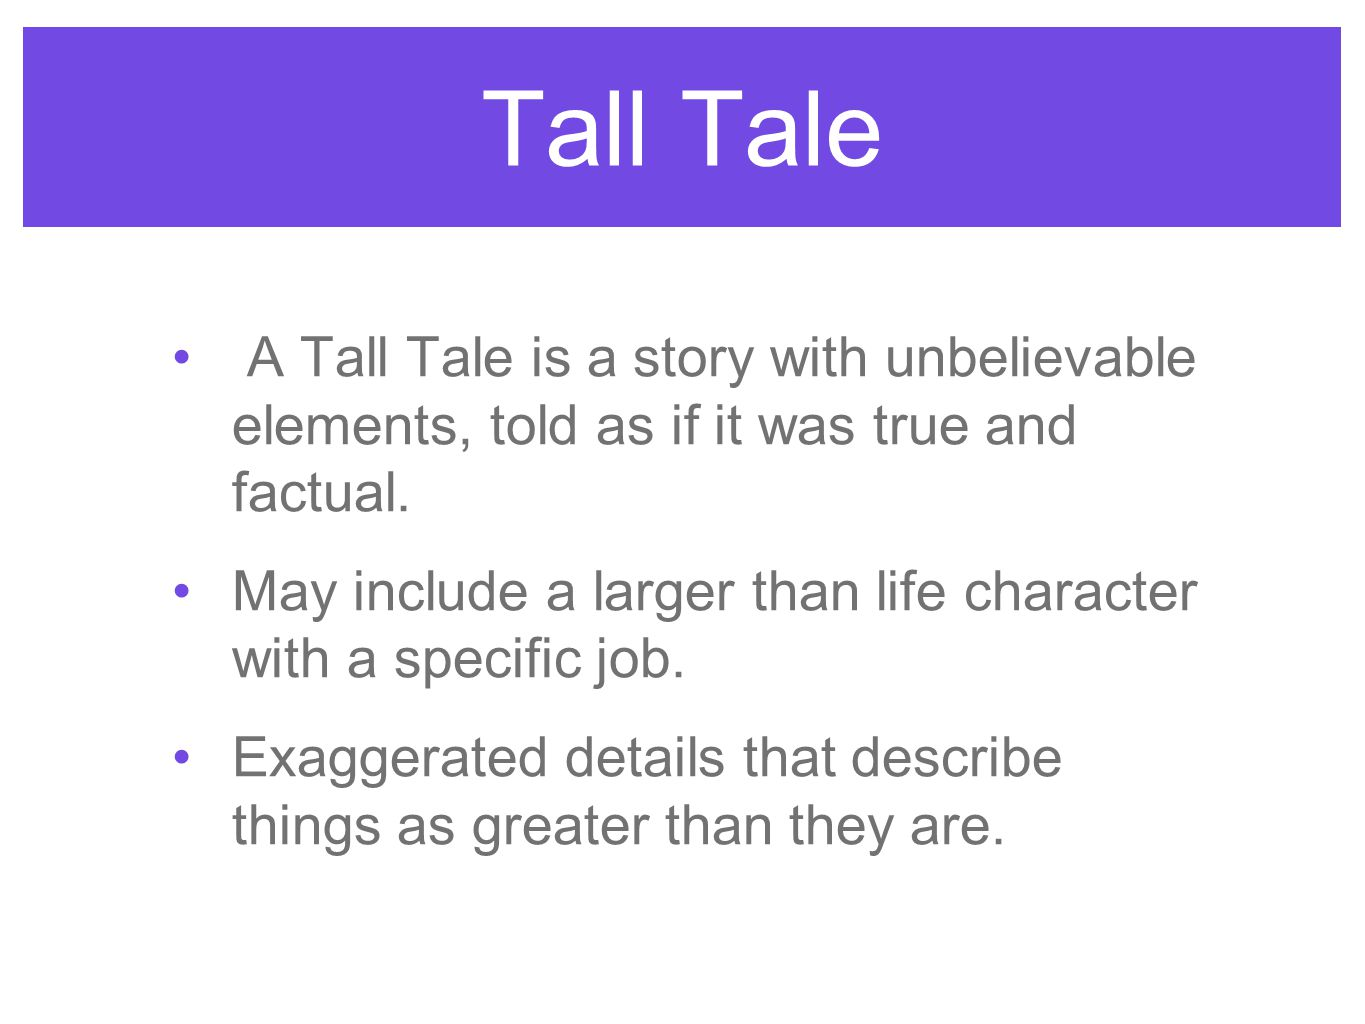 Tall Tale A Tall Tale is a story with unbelievable elements, told as if it was true and factual.